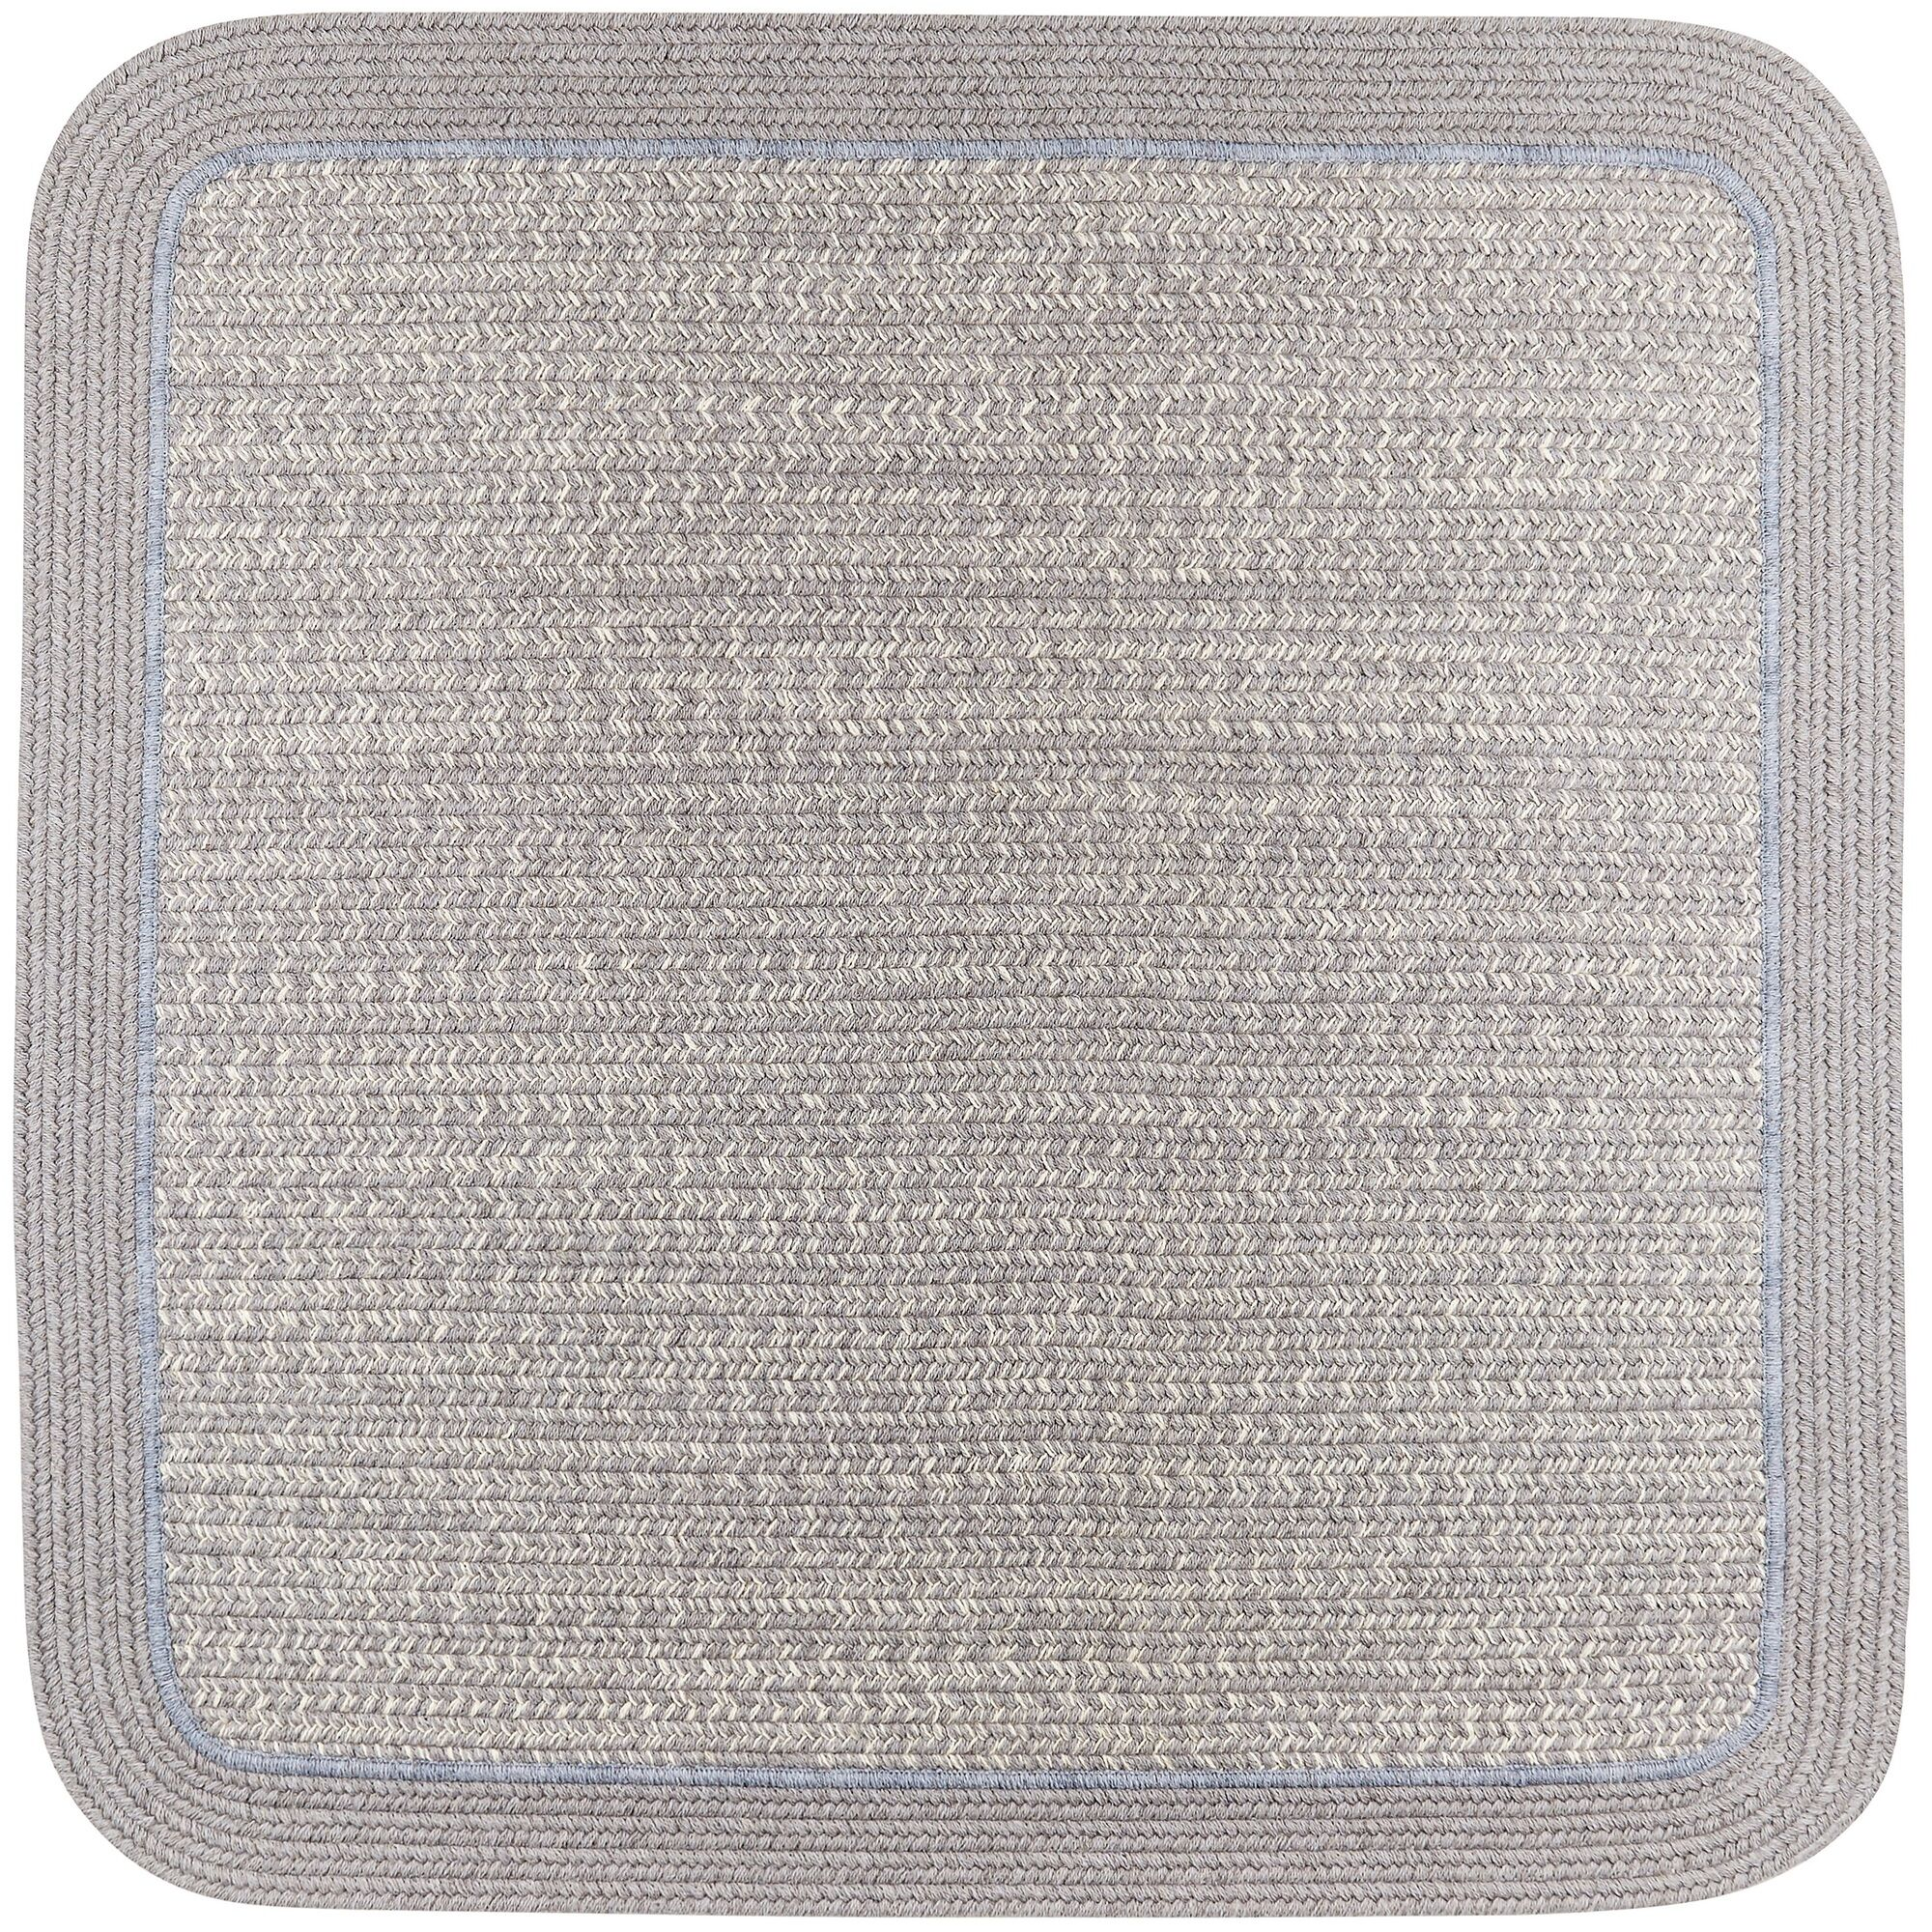 Browdy Braided Silvermist Area Rug Rug Size: Square 4'